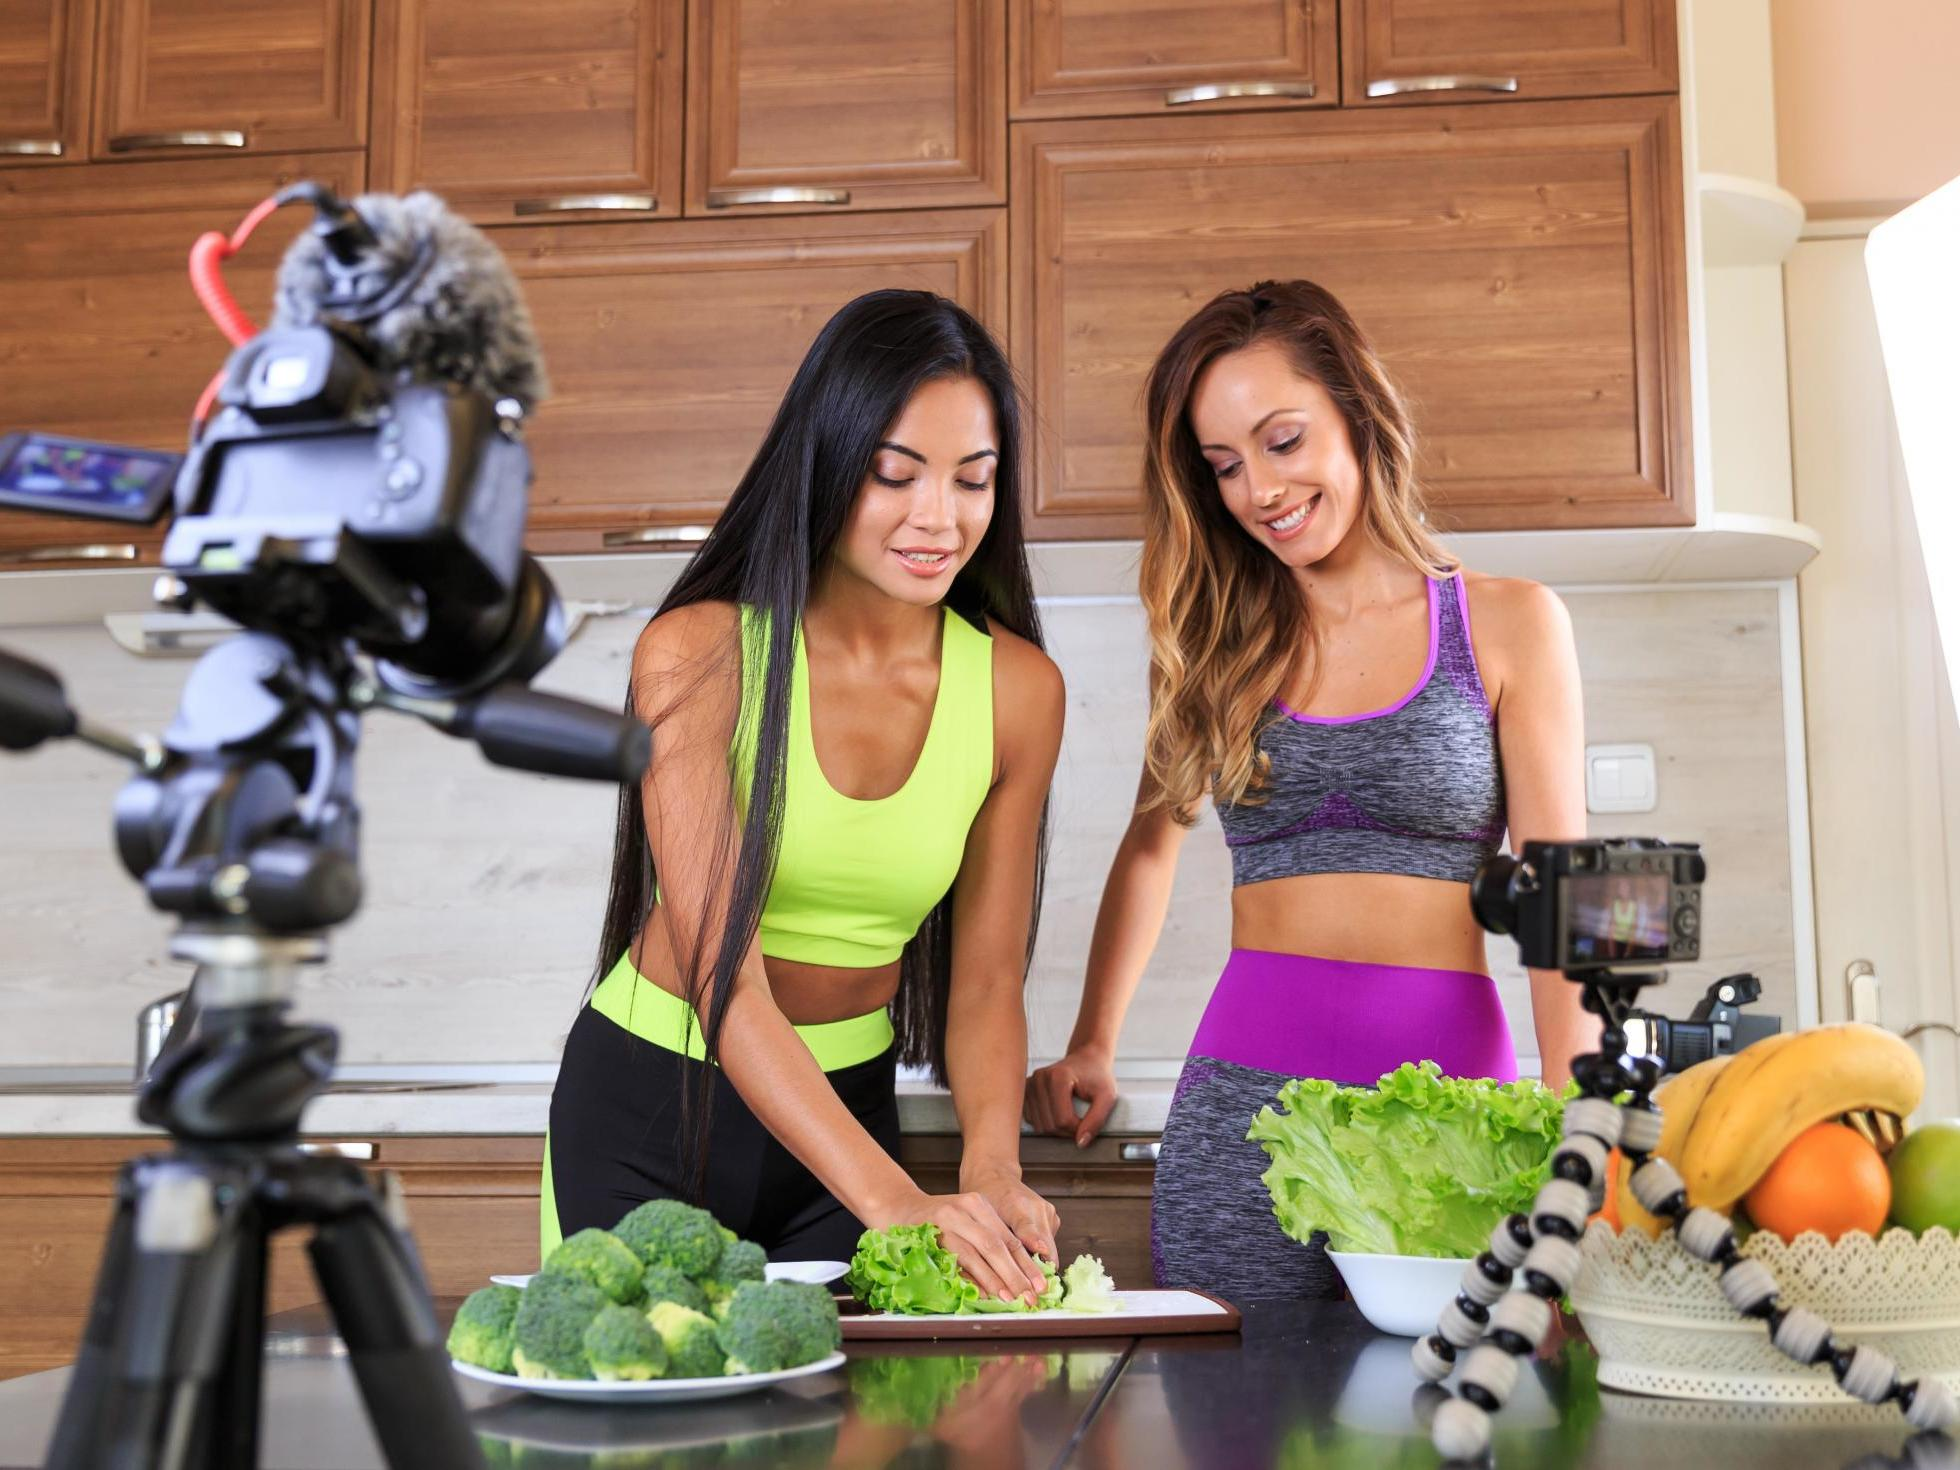 Social media influencers give bad diet and fitness advice